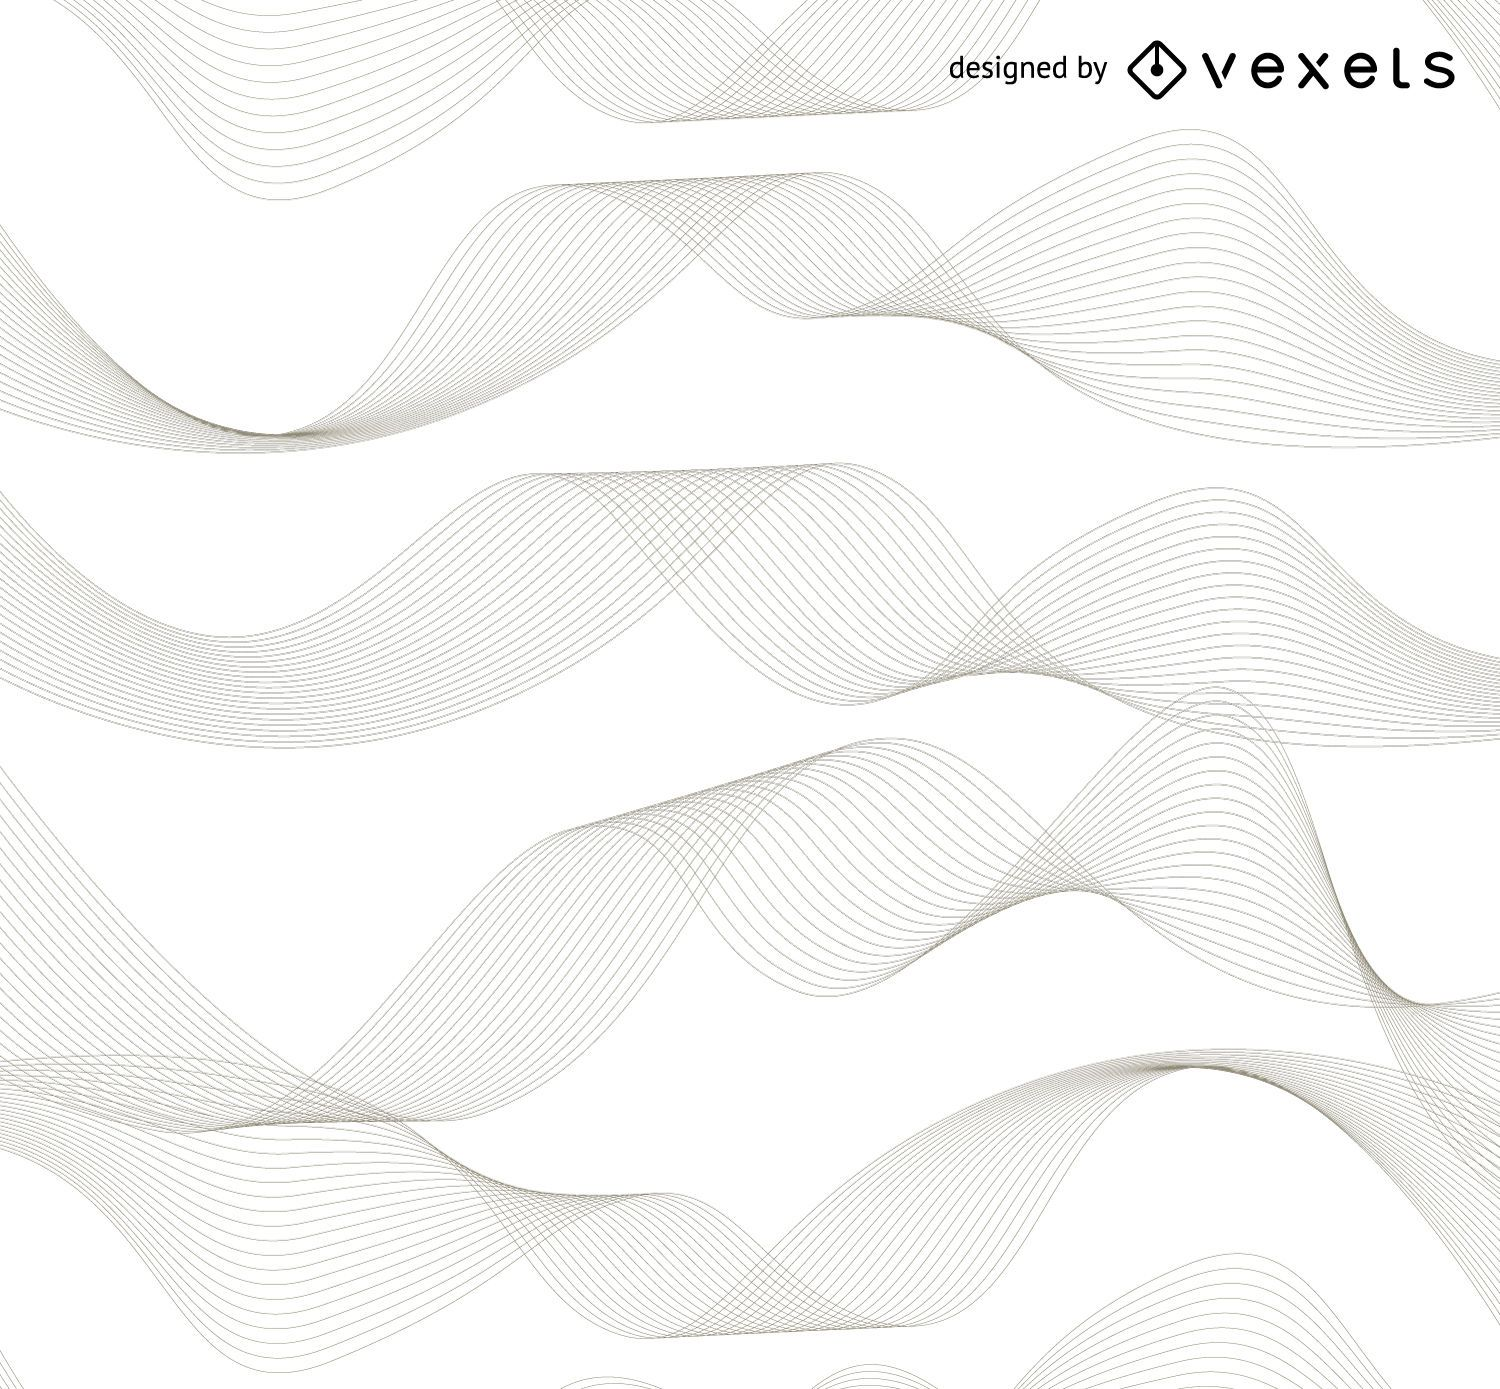 Linear waves abstract background